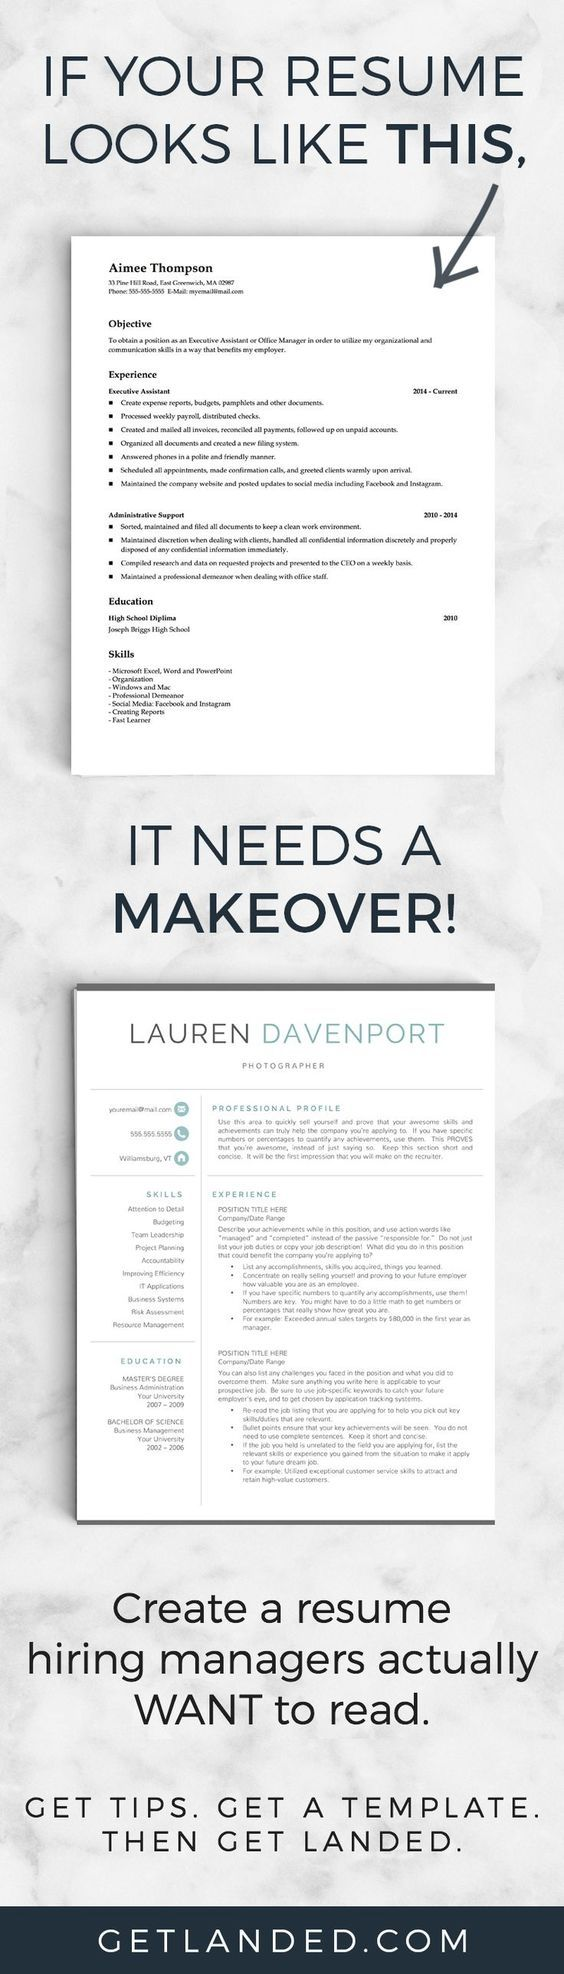 80 of candidates desperately need a resume makeover get a resume makeover today with resume writing tipscareer